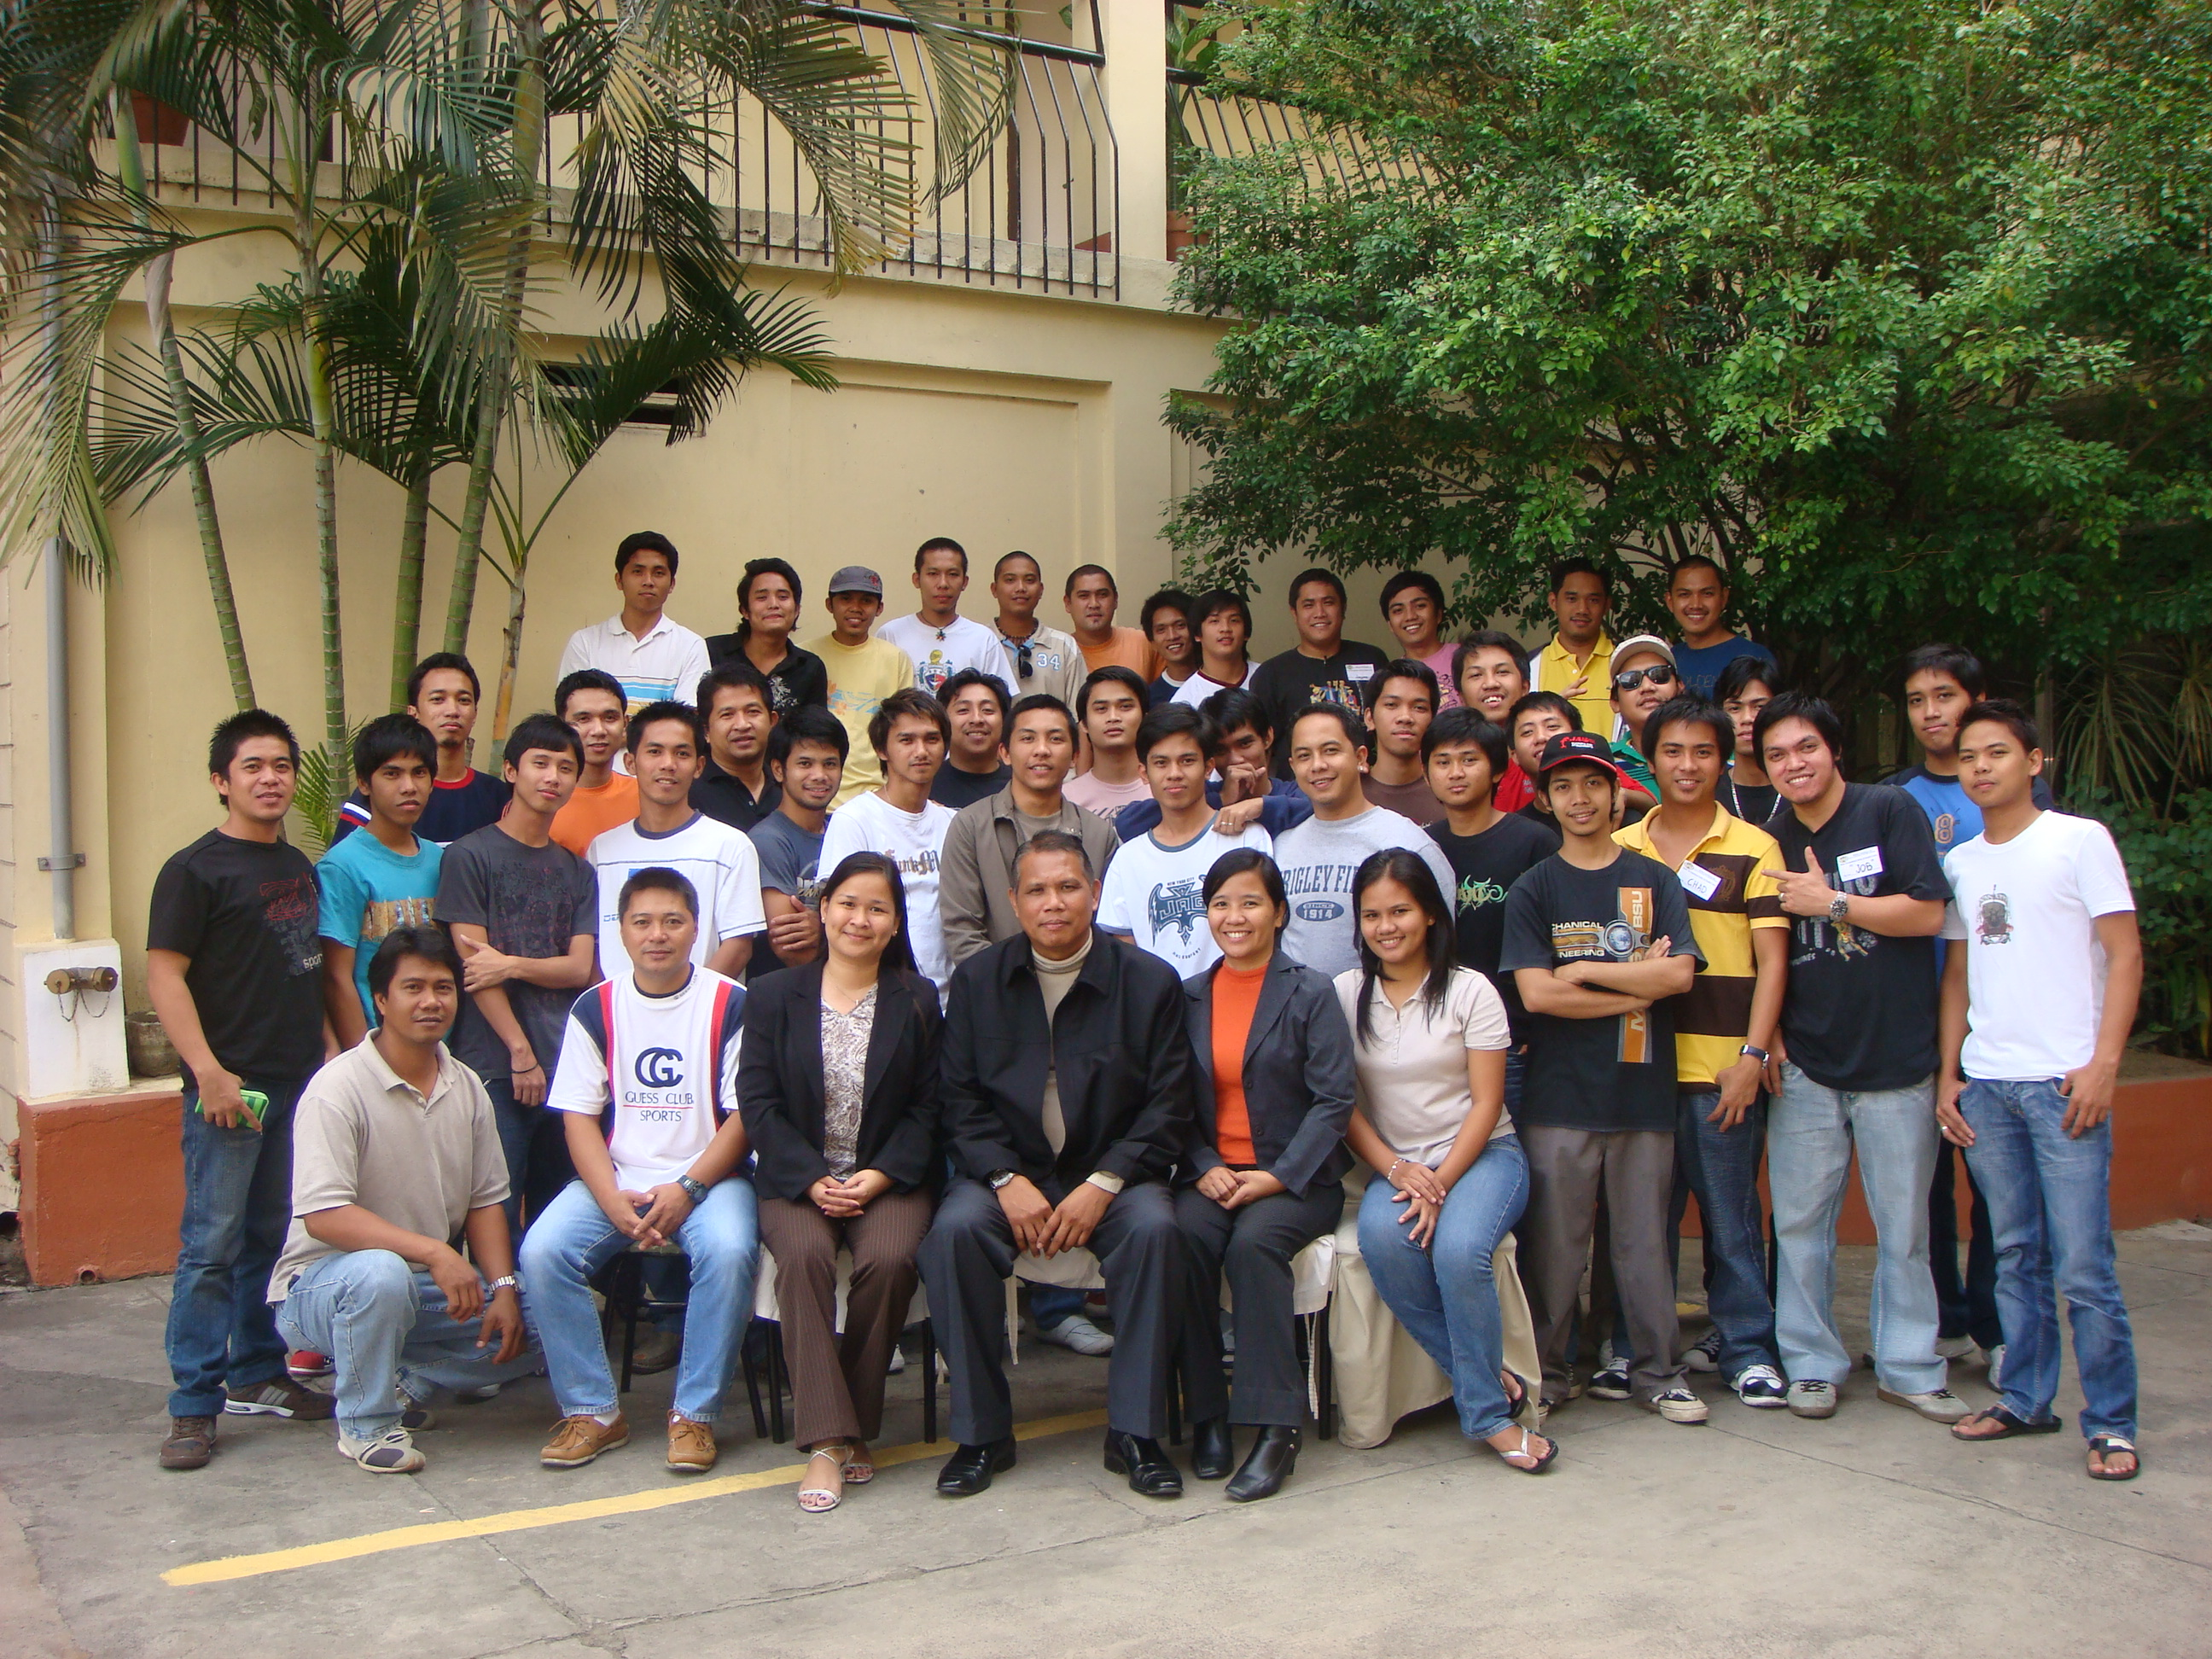 dec26-30-2008batch.jpg